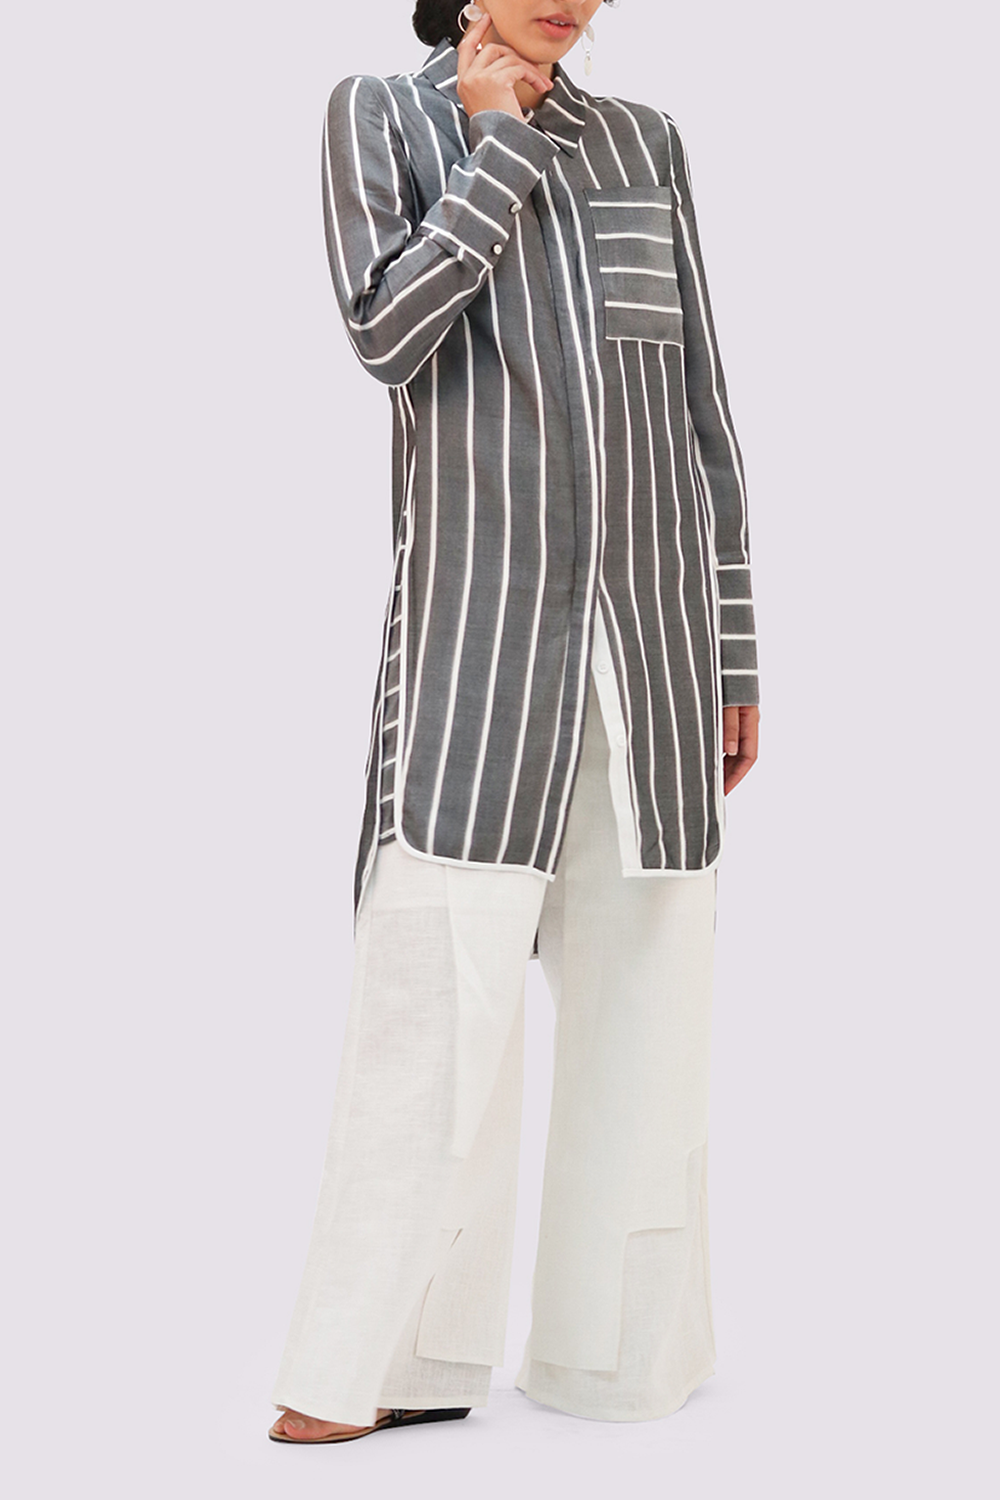 Charcoal shirtdress with white stripes